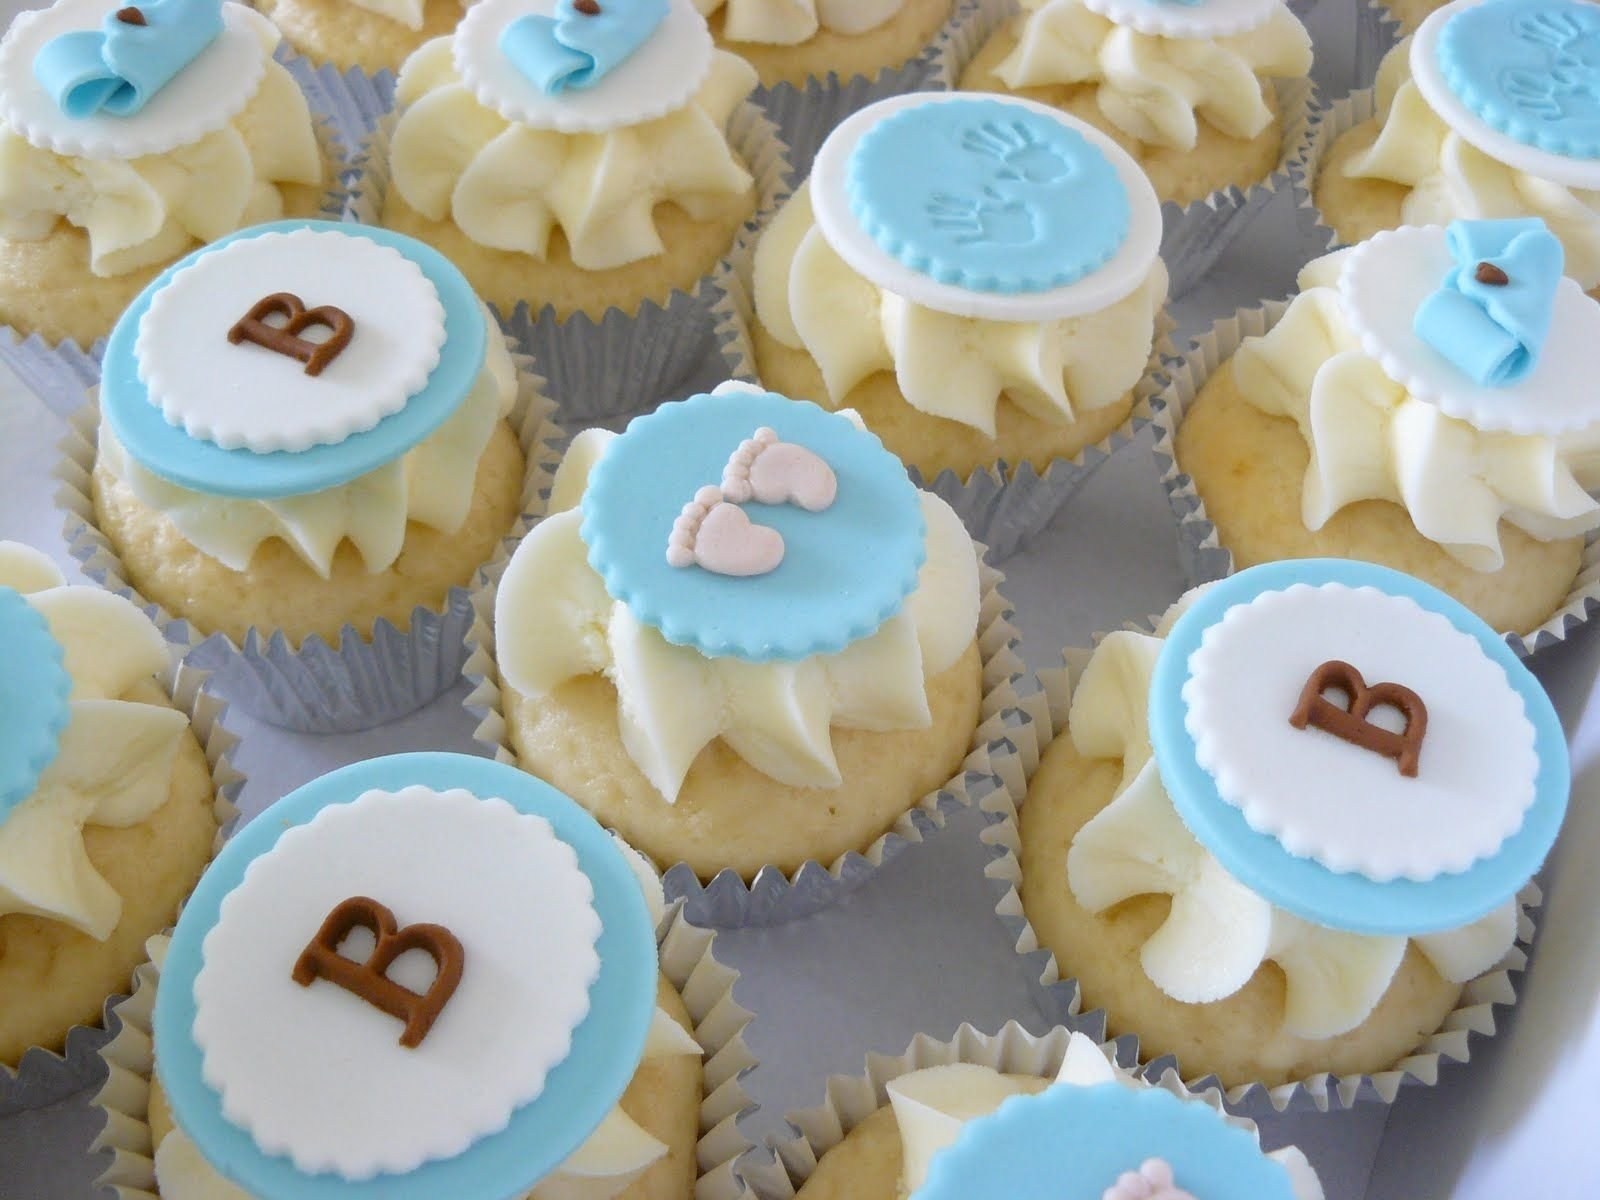 10 Trendy Baby Shower Cupcake Ideas For A Boy baby shower cupcakes decorations the cup cake taste cupcakes 2